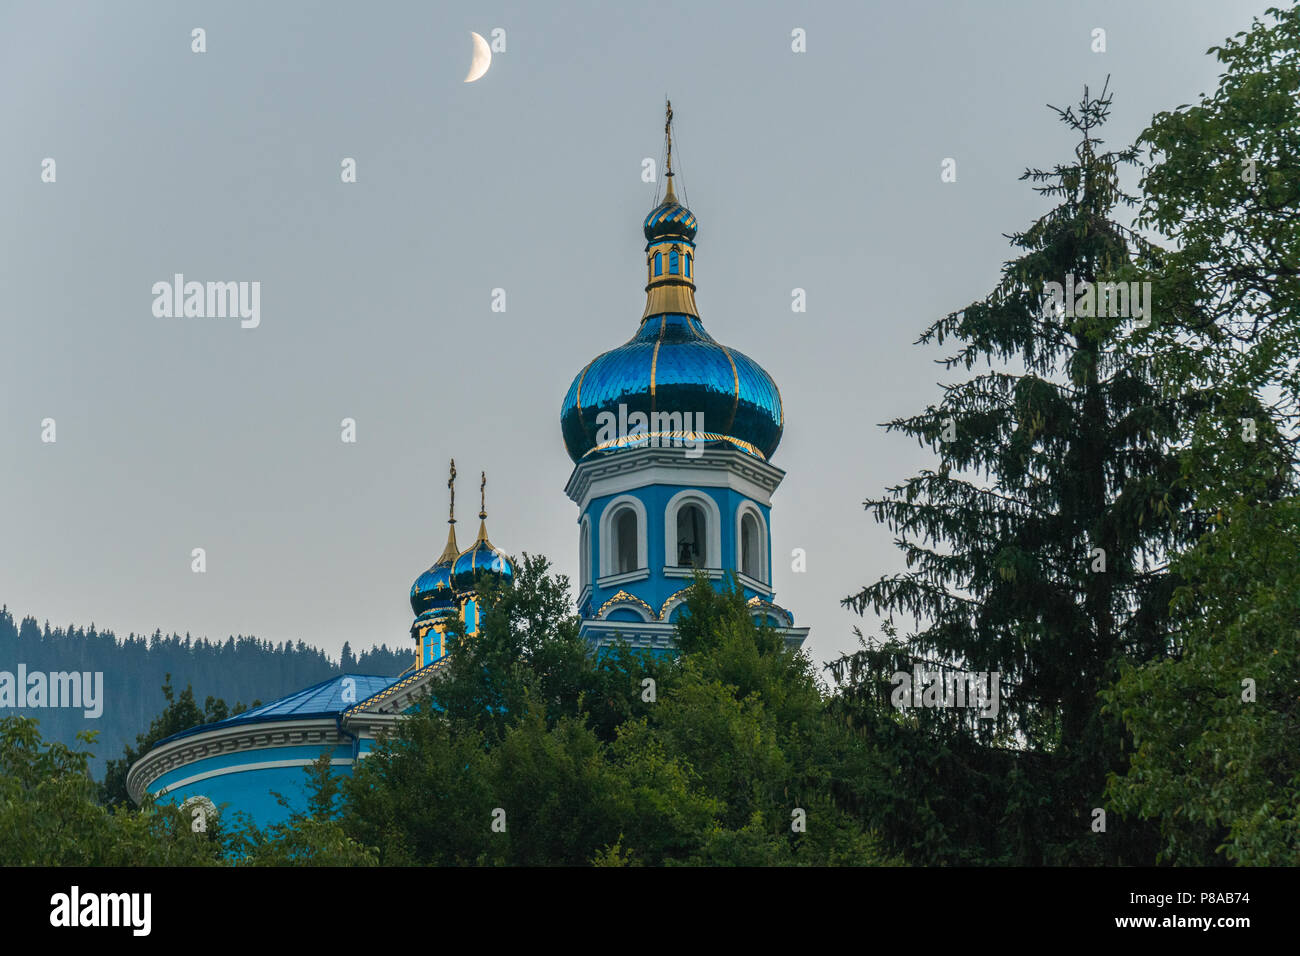 a majestic moon in a cloudless sky above the dome of the church . For your design - Stock Image